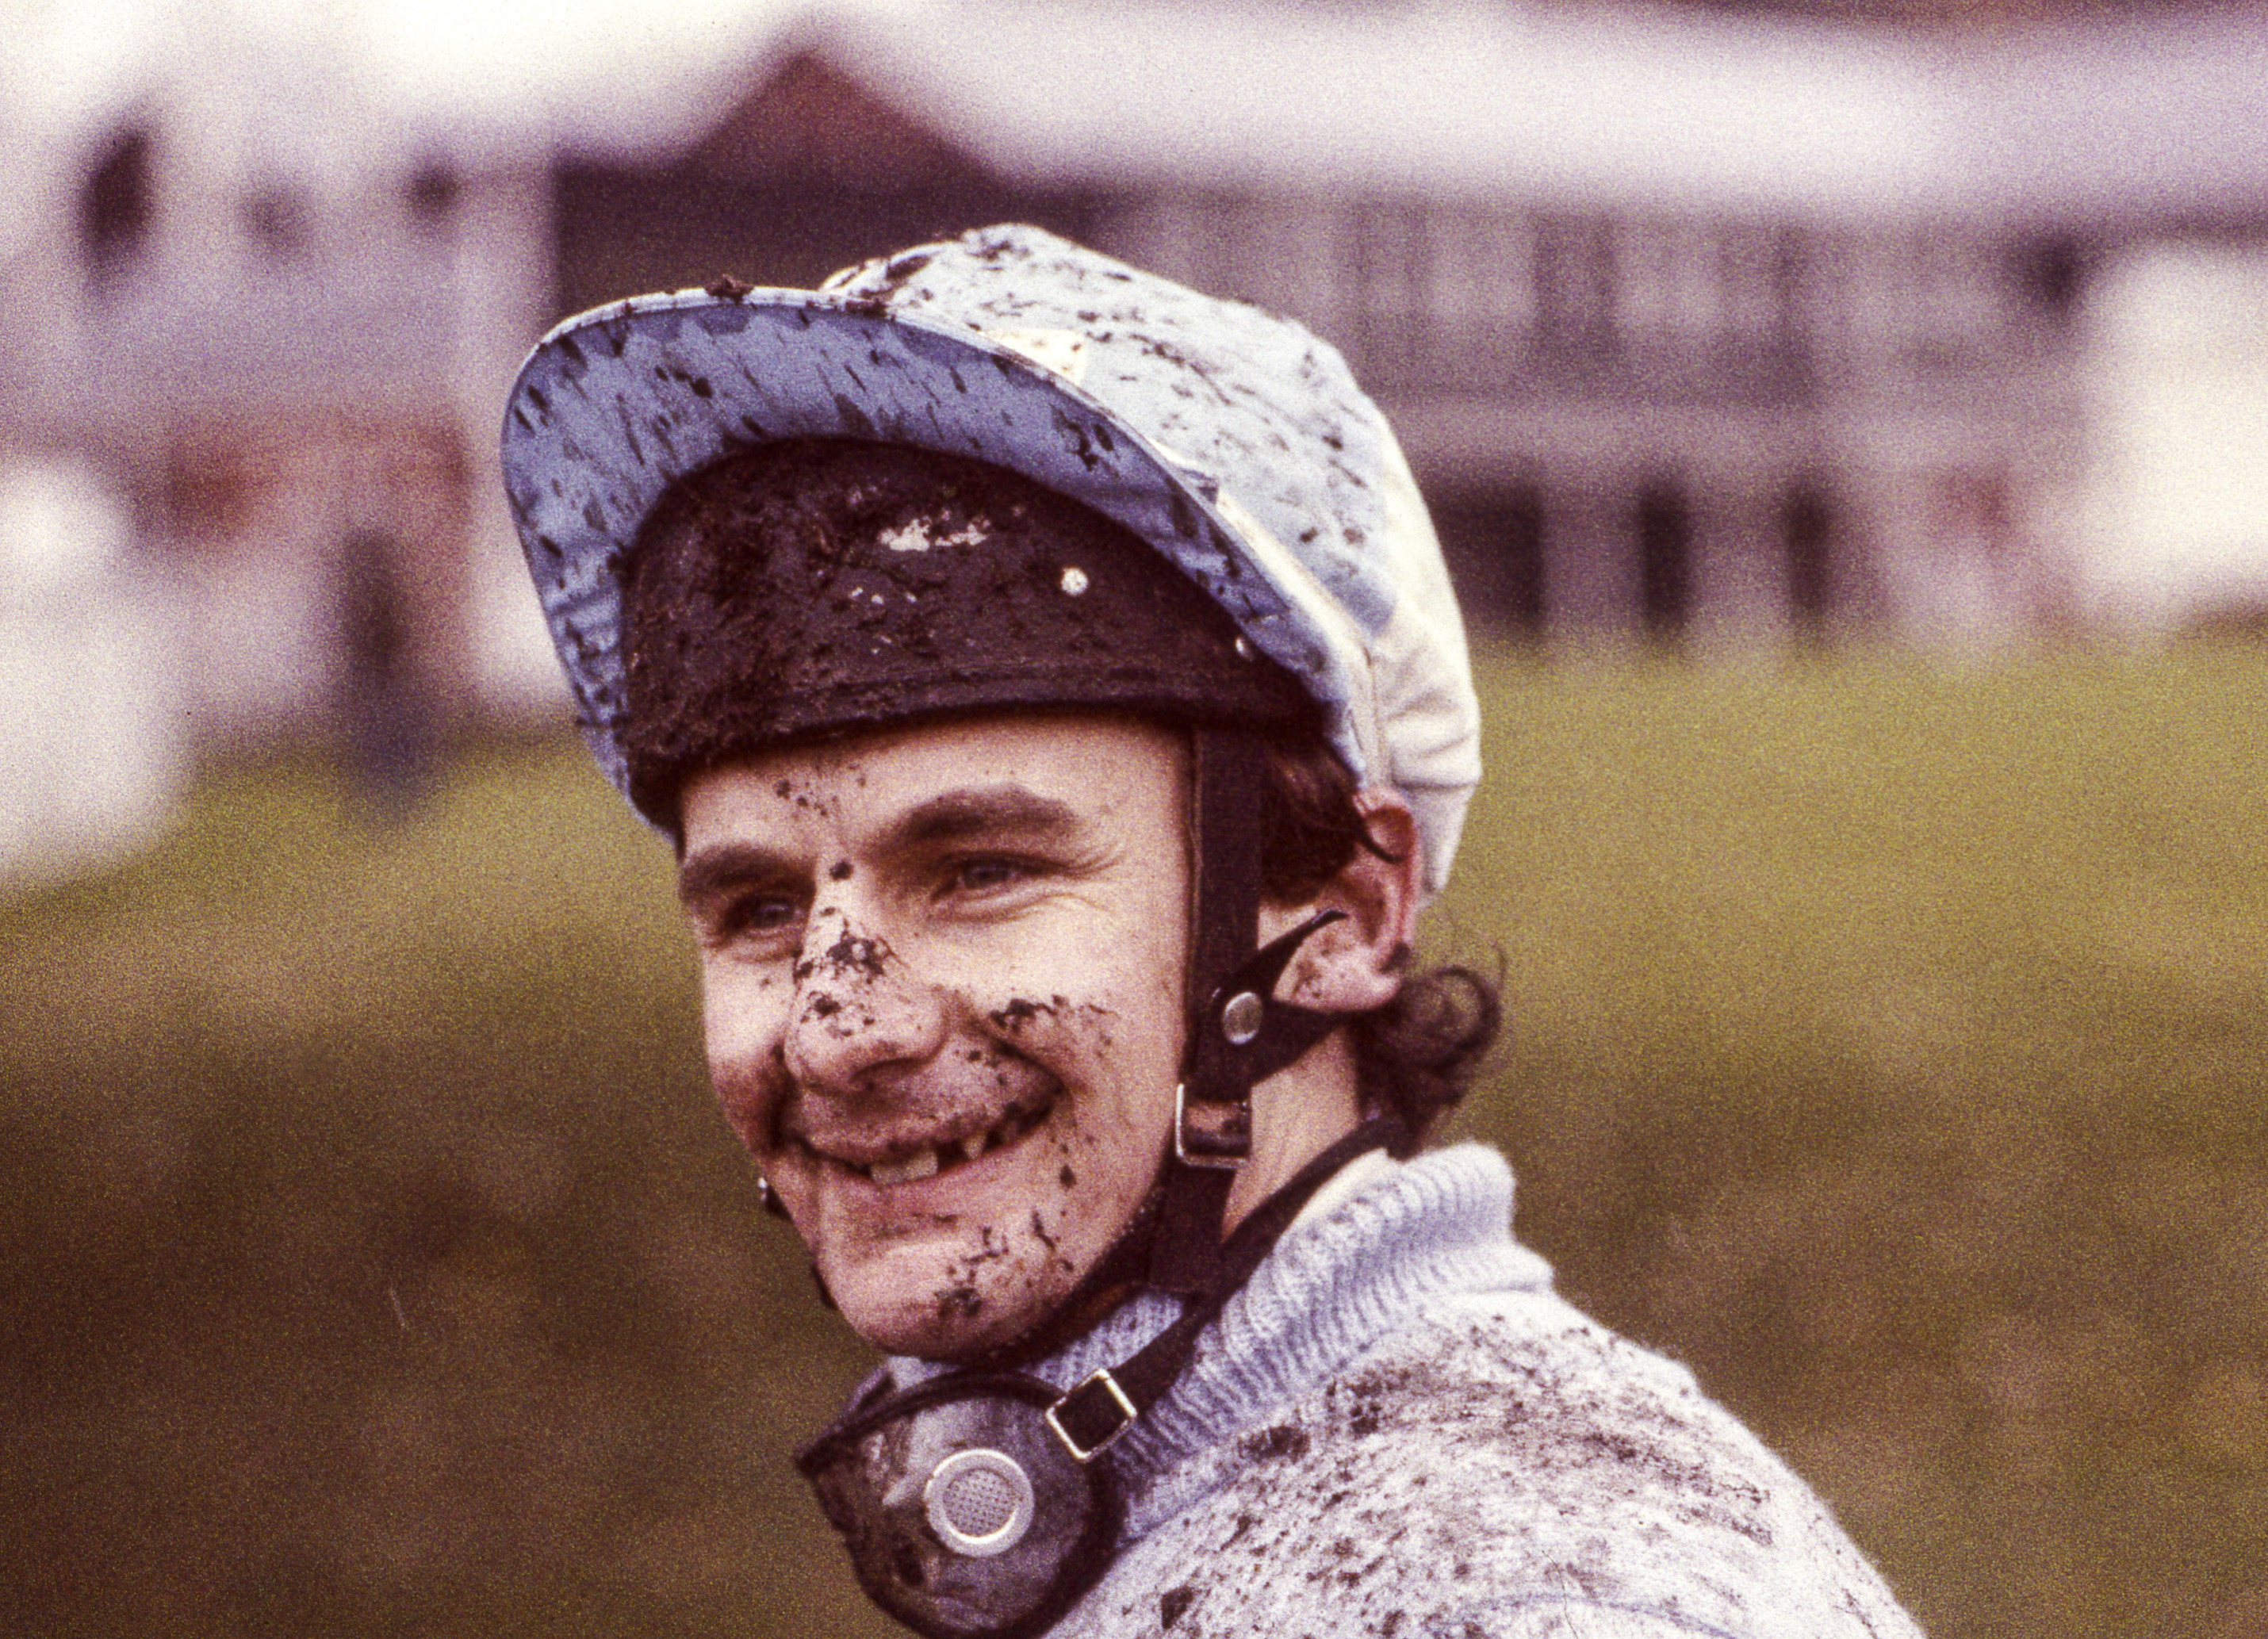 Fomer Jumps jockey and Perth general manager Sam Morshead has died, aged 63